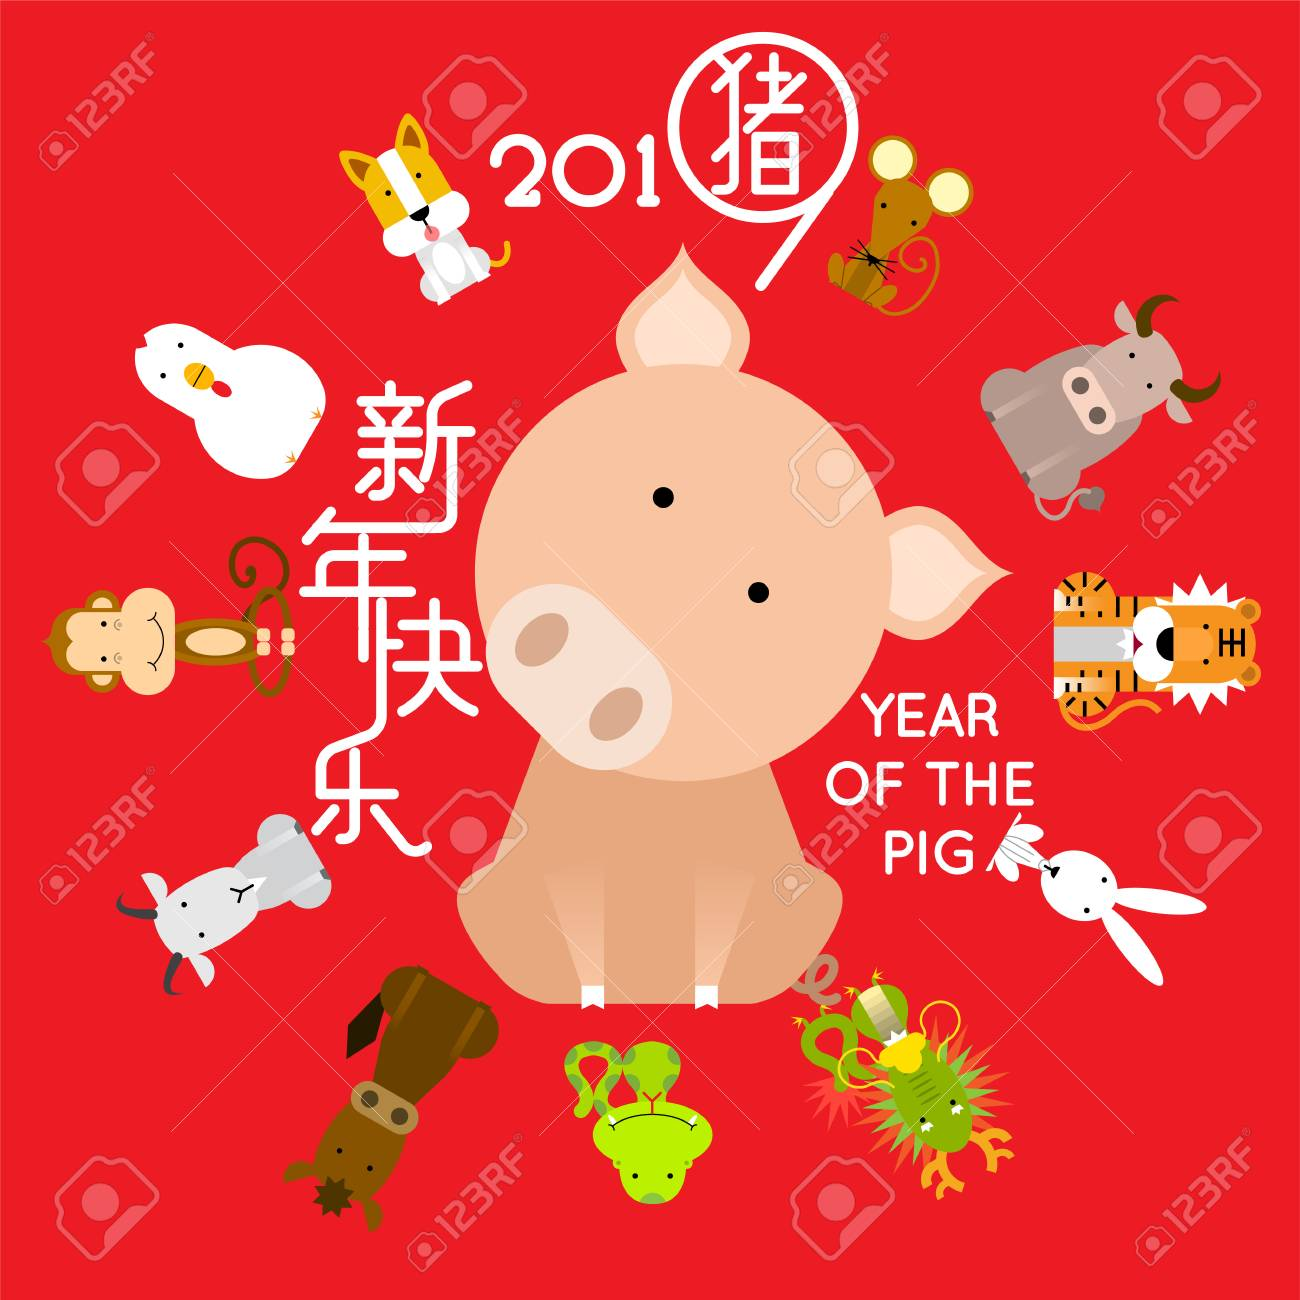 Happy Chinese New Year 2019 Year Of The Pig With 12 Chinese